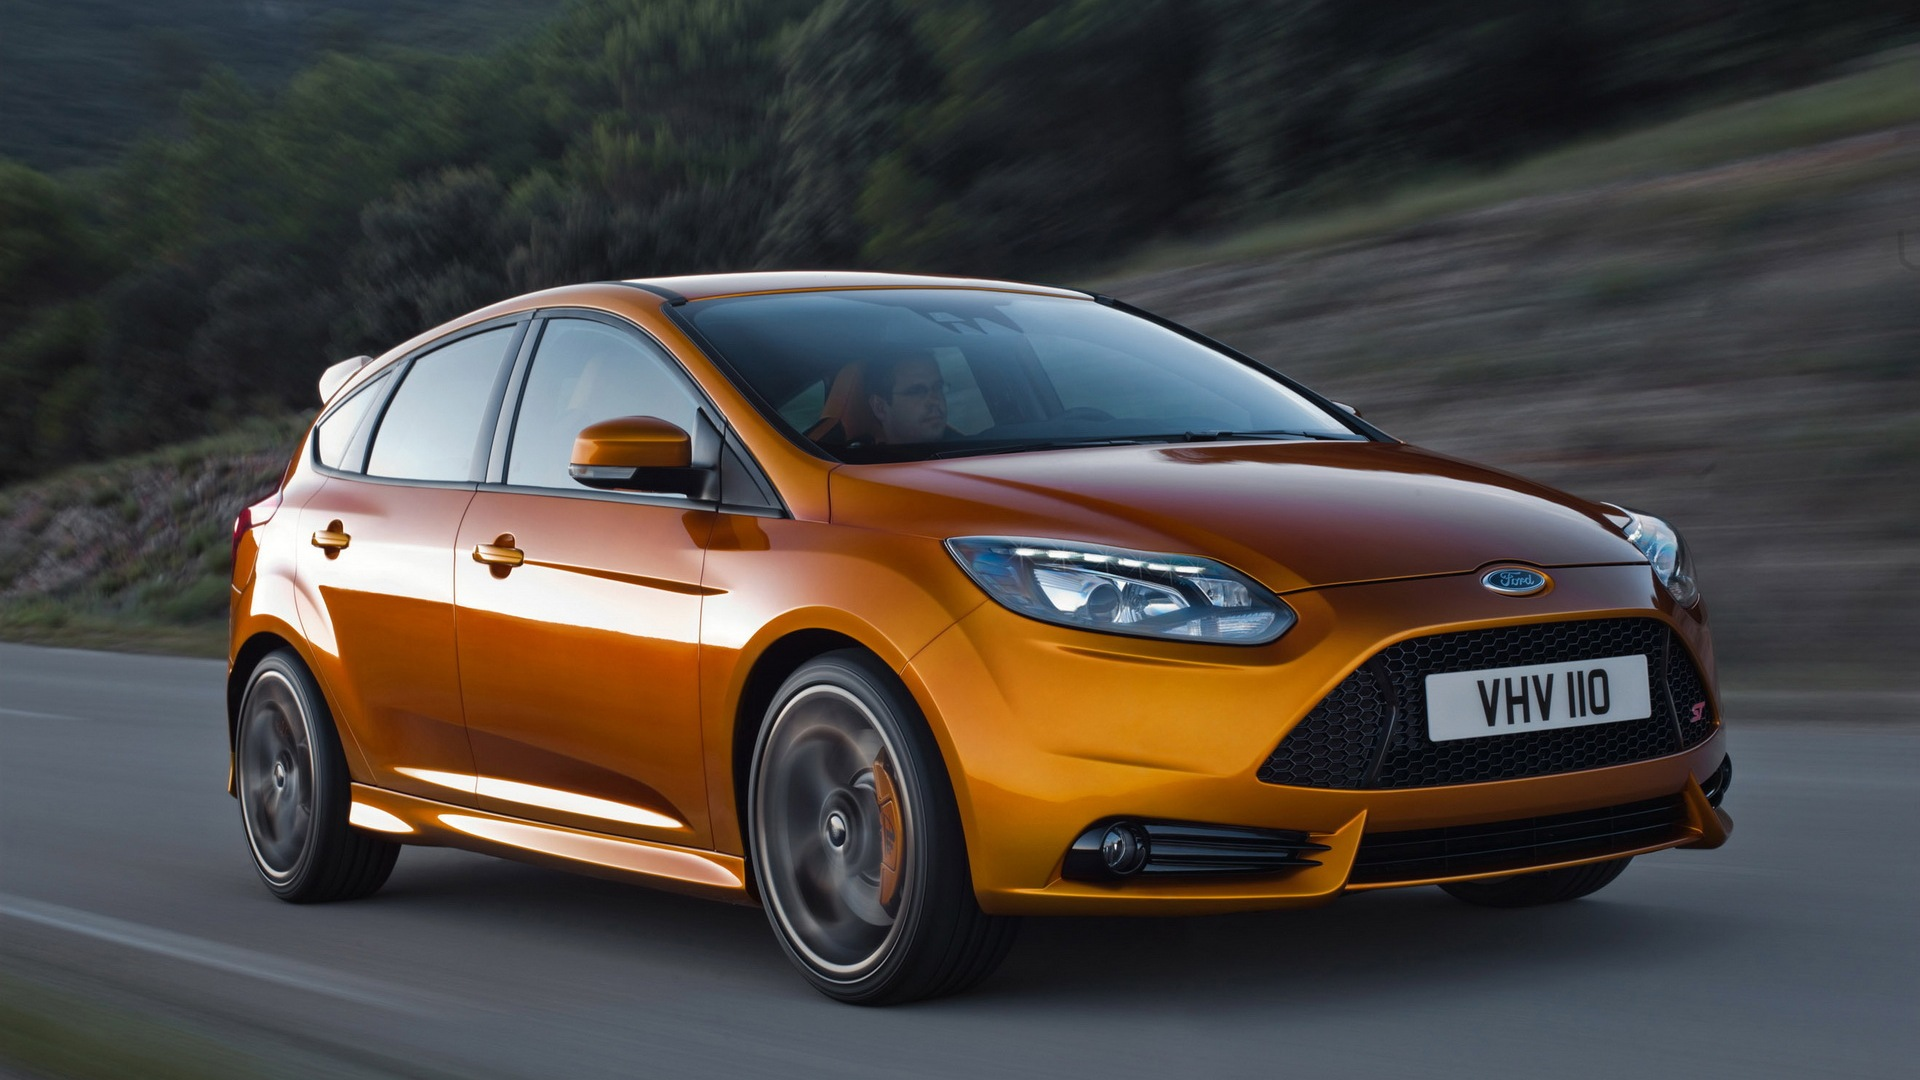 2012 Ford Focus St wallpaper   215472 1920x1080